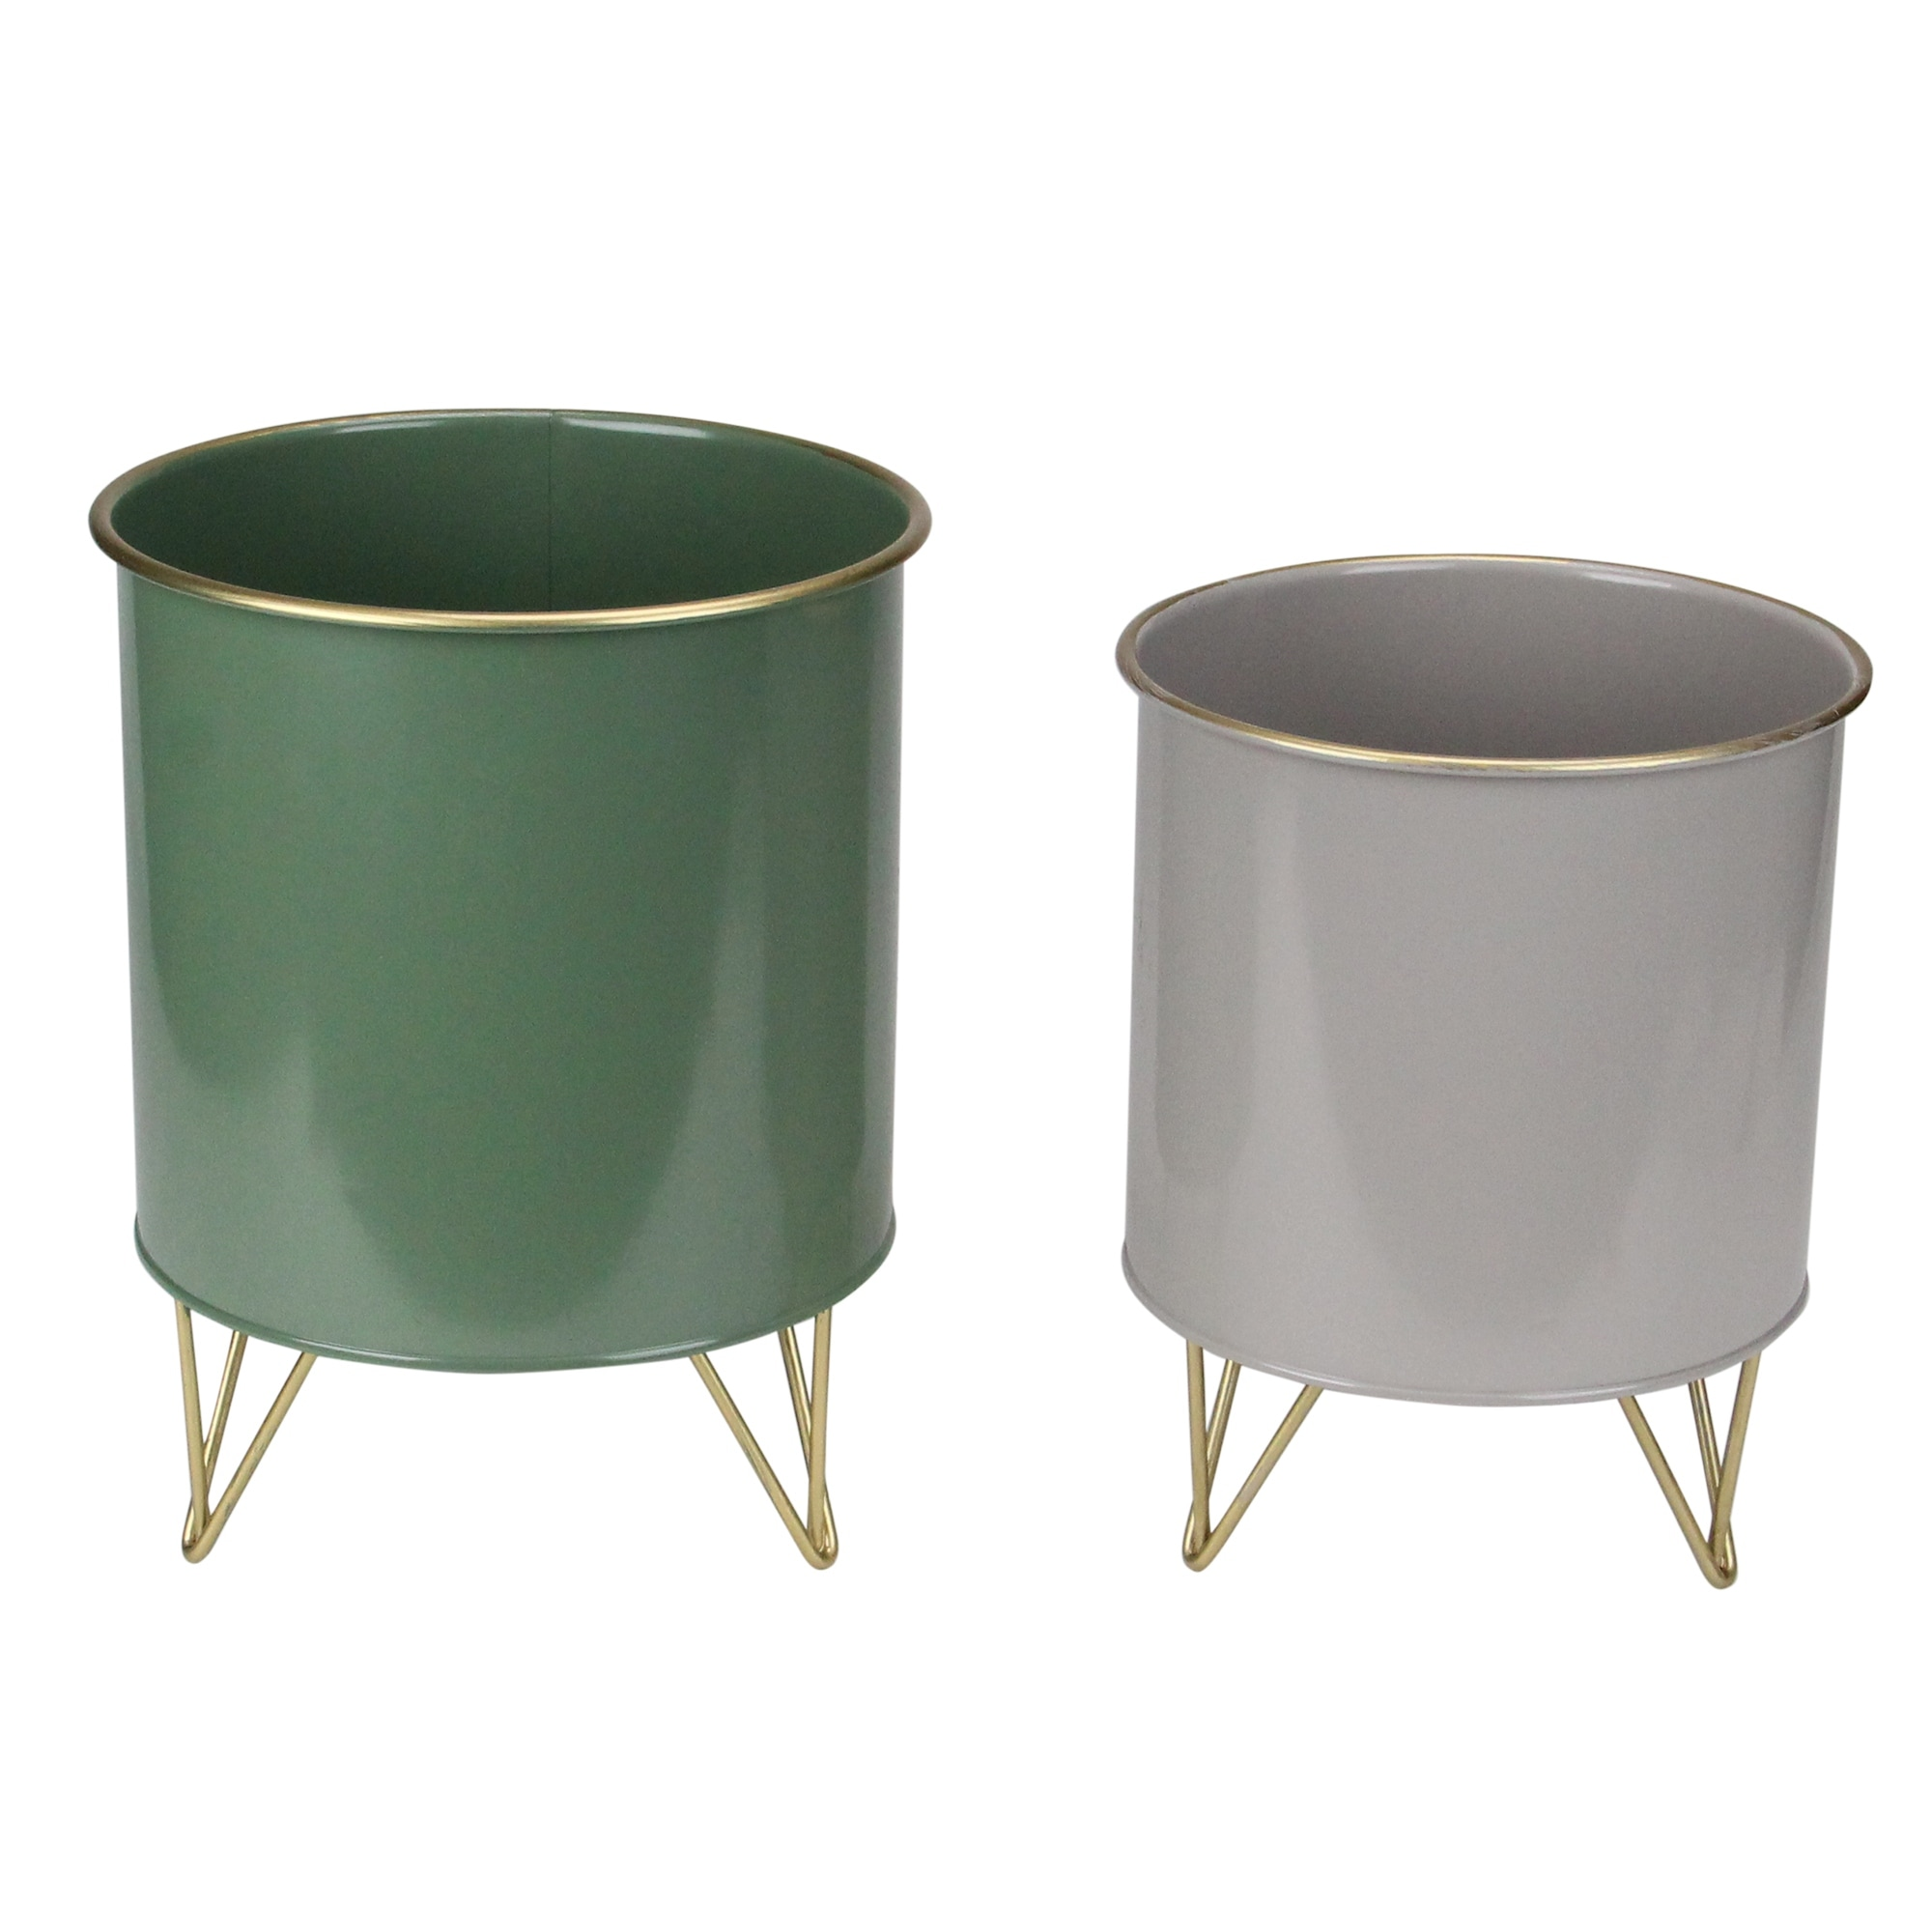 Set of 2 Gray and Green Cylindrical Outdoor Planters with Base 9.75 - N/A